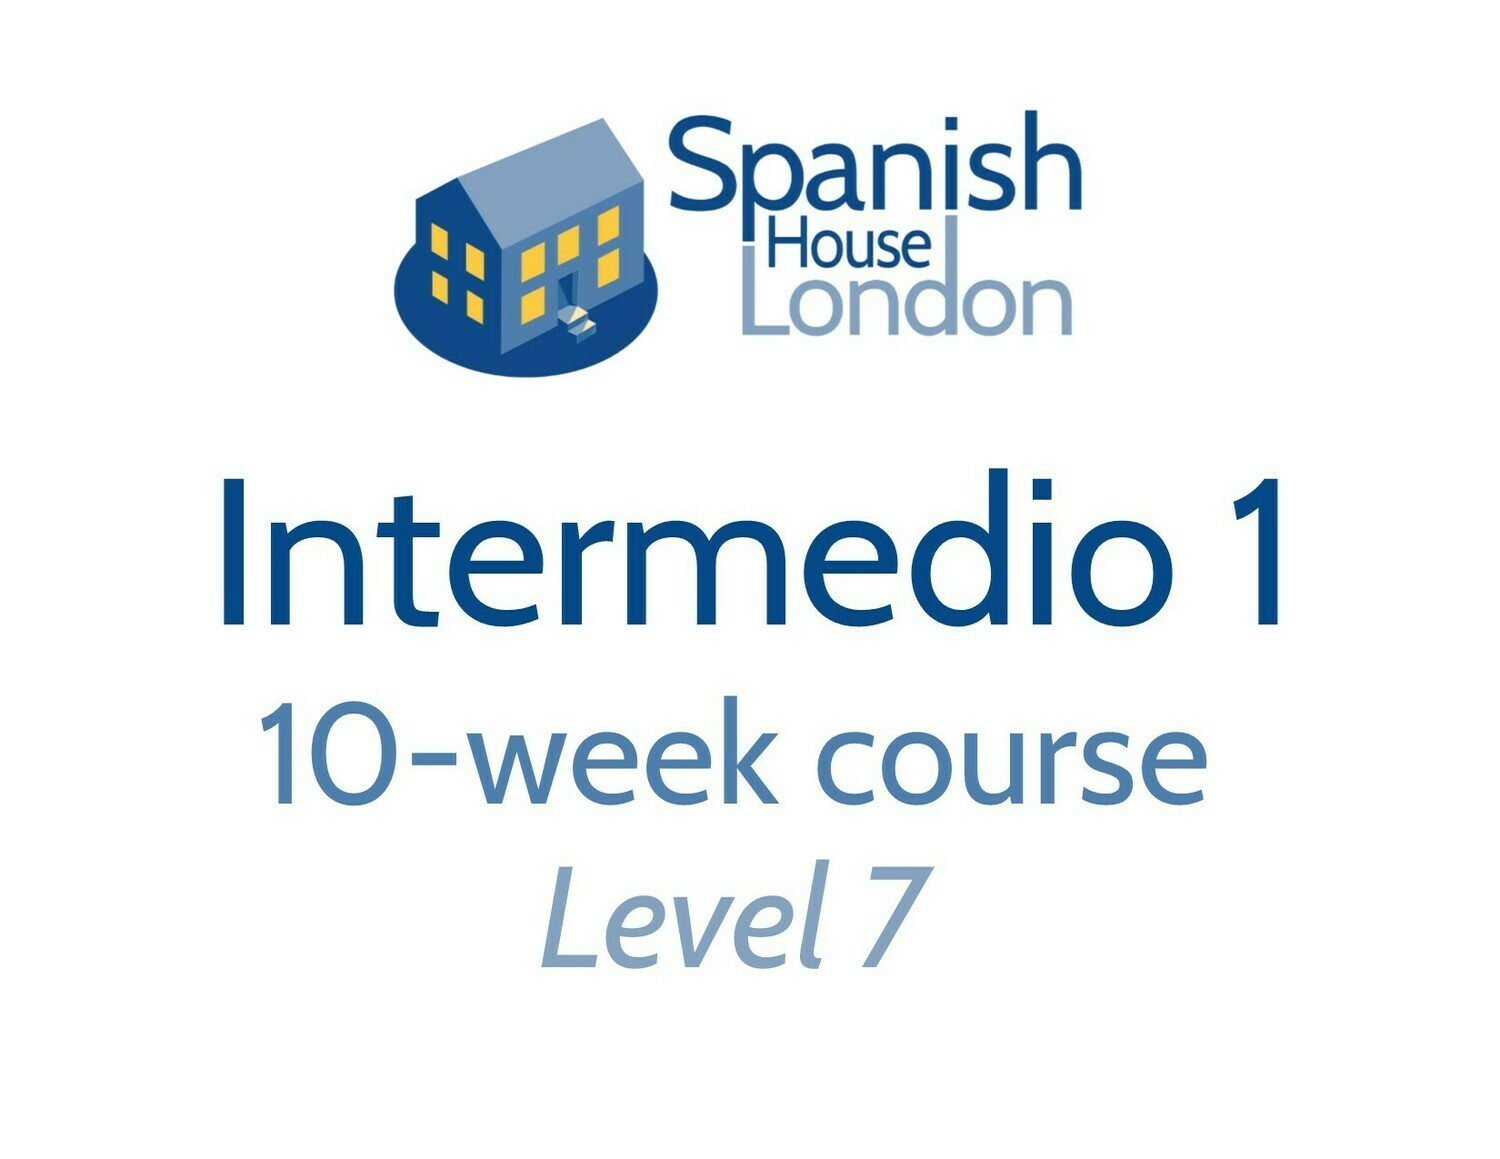 Intermedio 1 Course starting on 8th July at 7.30pm